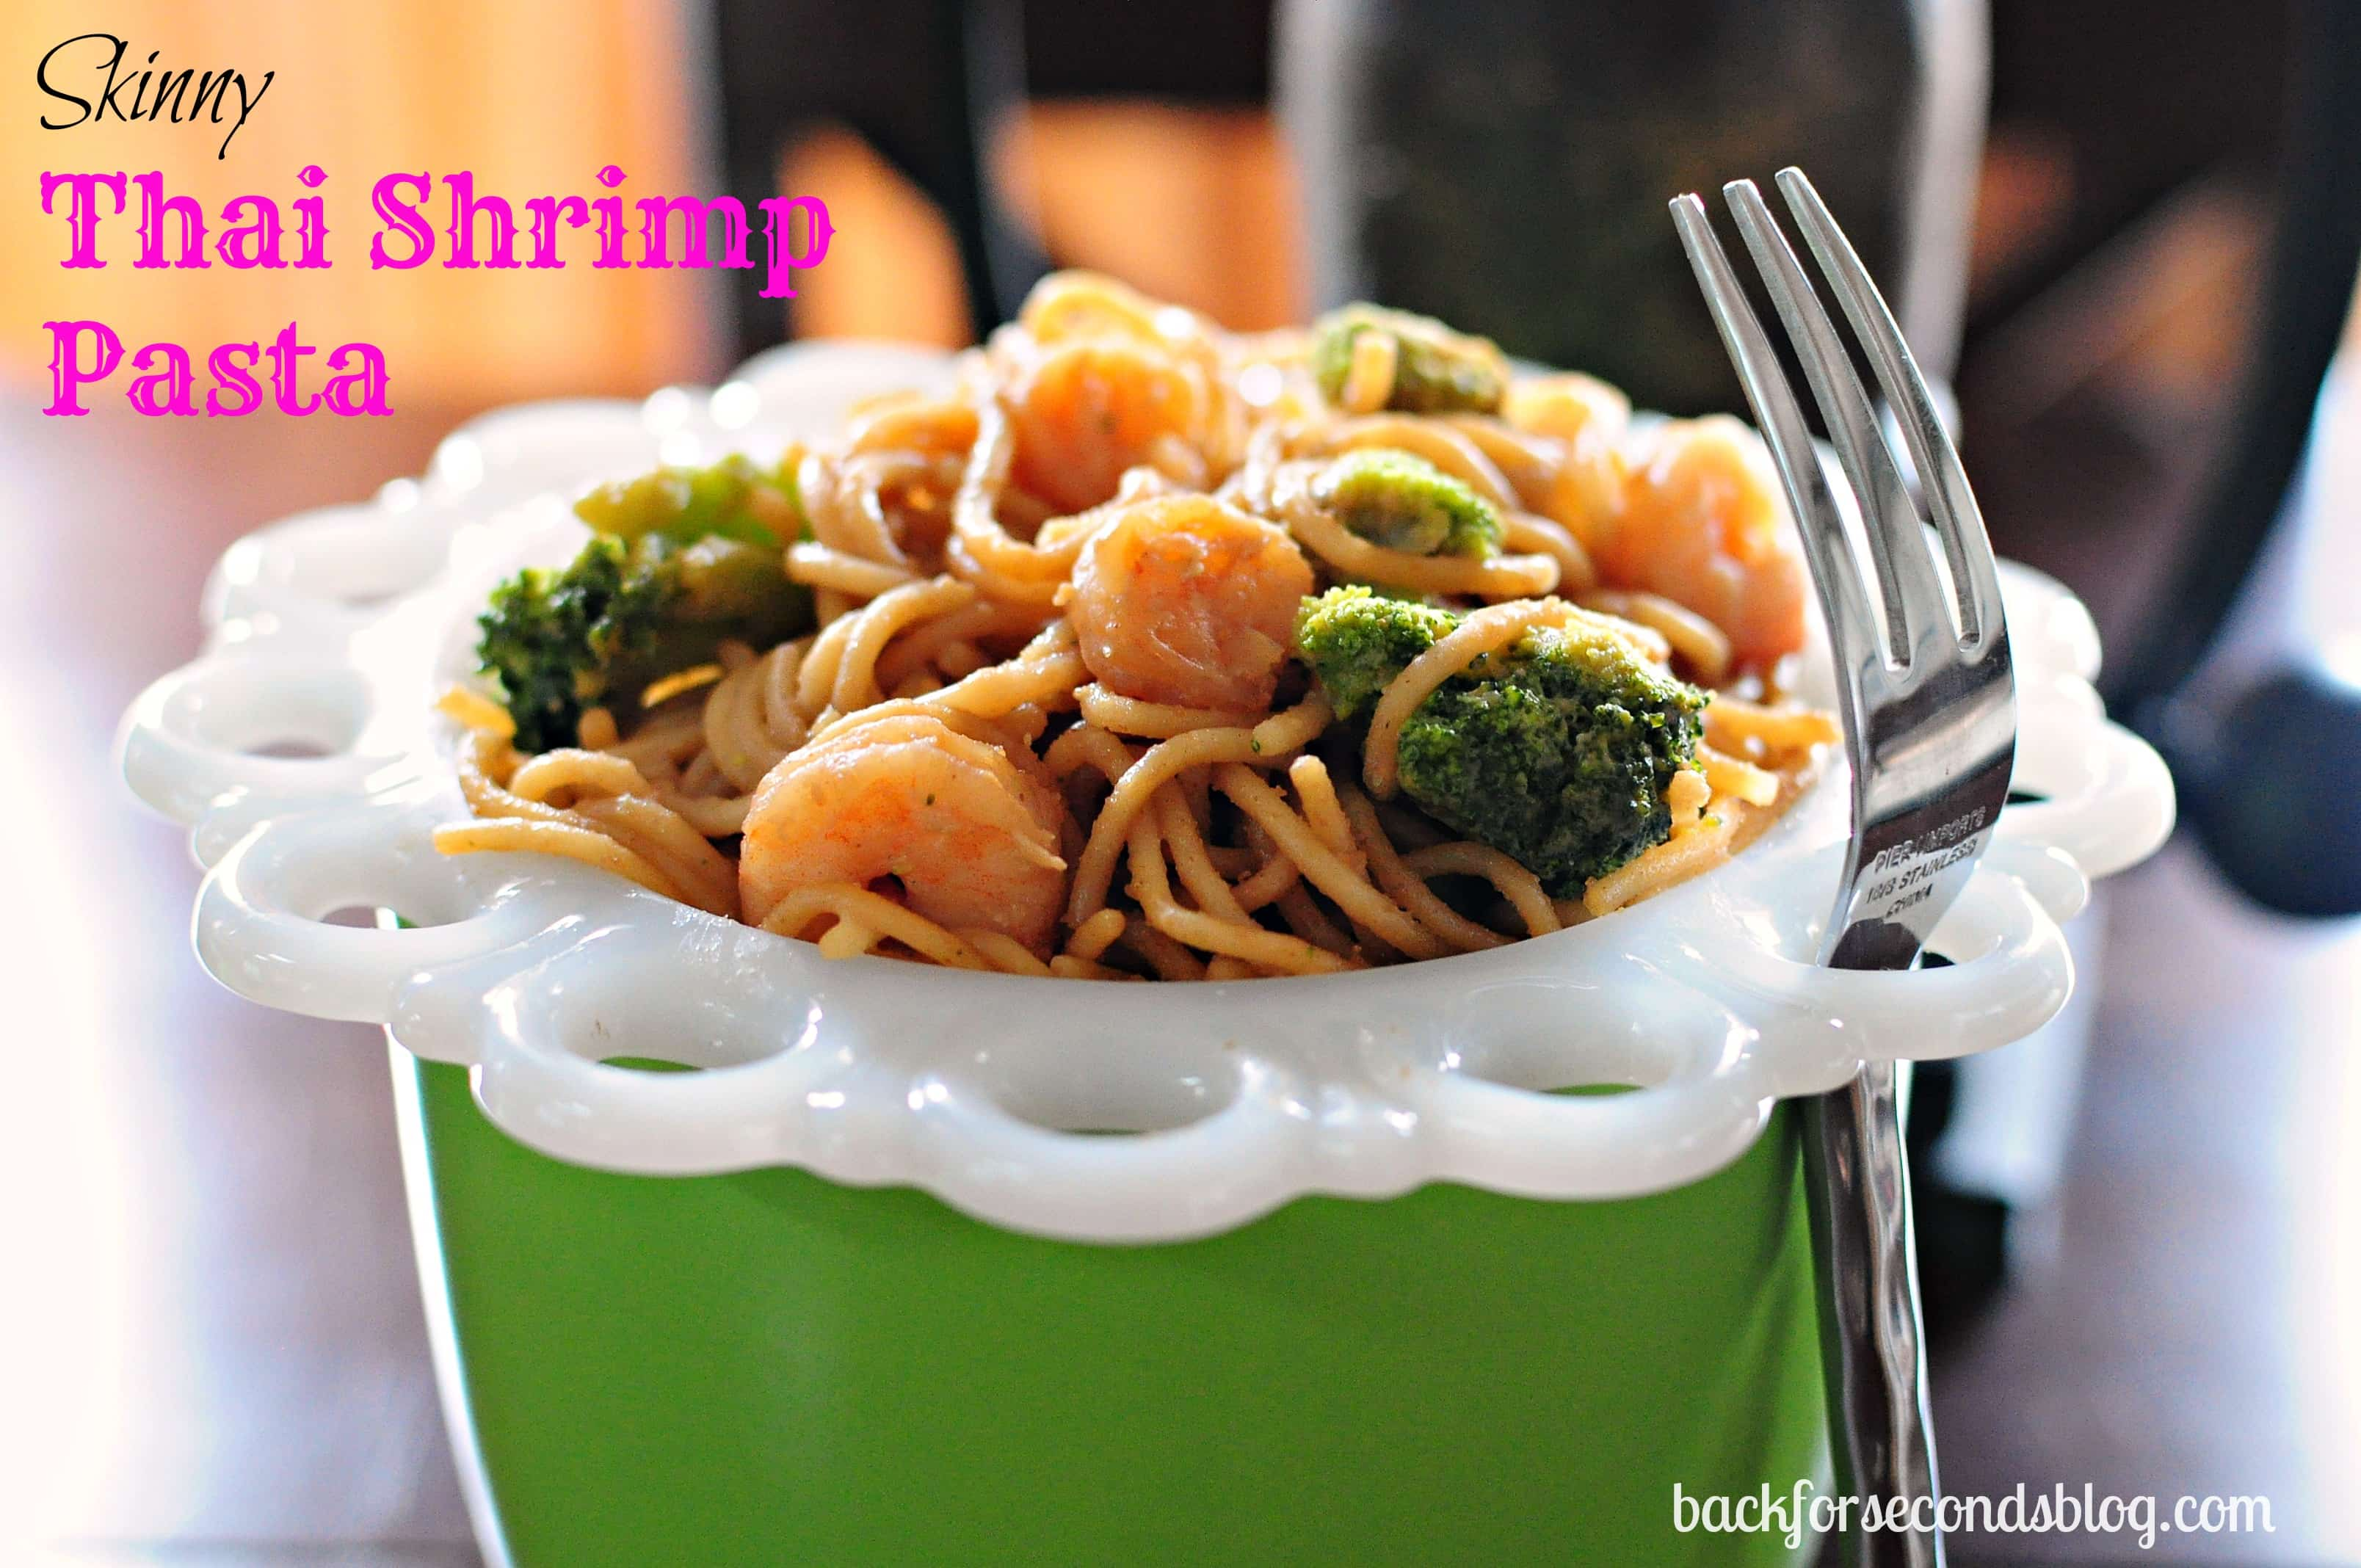 Skinny Thai Shrimp Pasta @BackForSeconds #healthy #skinny #easy #peanutbutter